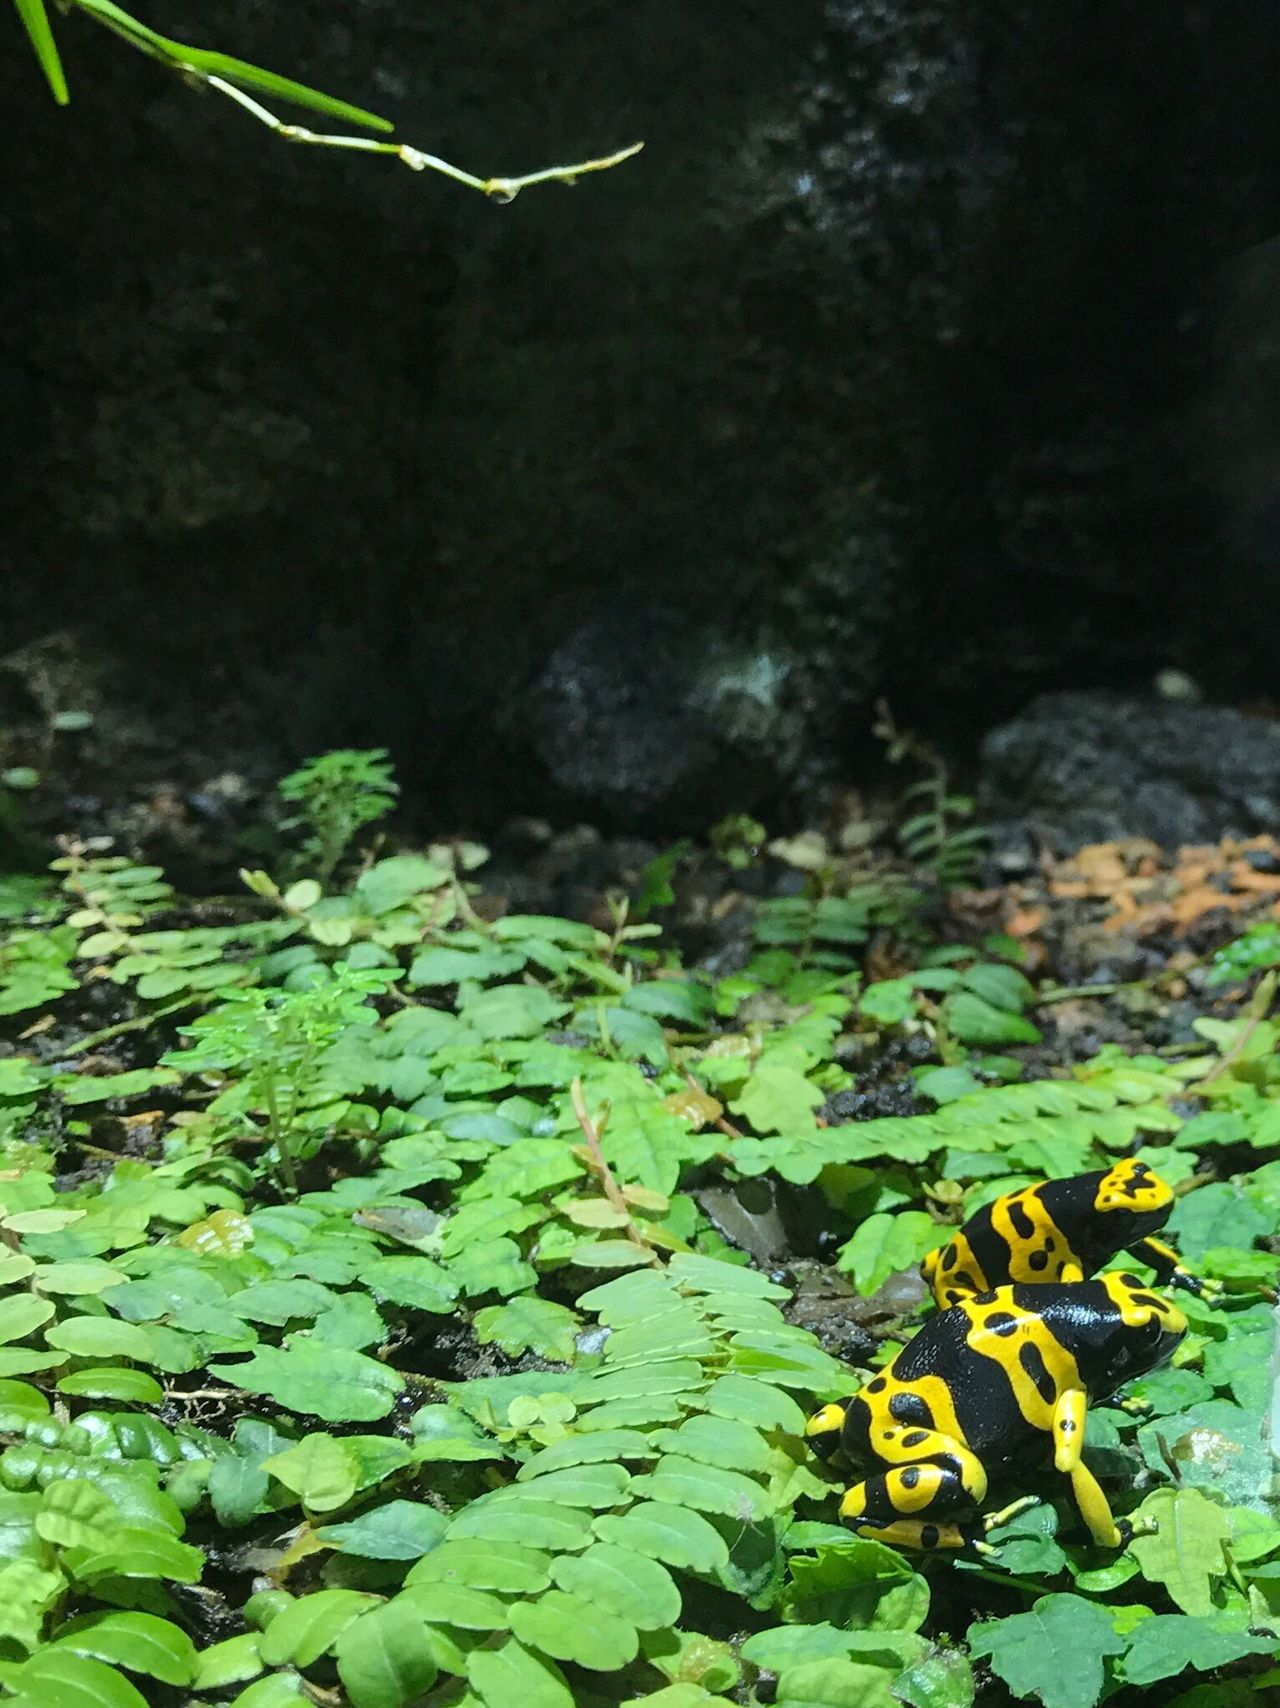 Yellow Banded Poison Dart Frog Gelbgebänderter Pfeilgiftfrosch Dendrobates Leucomelas Nature Leaf Growth Plant Frog Green Color Beauty In Nature Fragility Freshness No People Close-up EyeEmSwiss Zoology Zoo